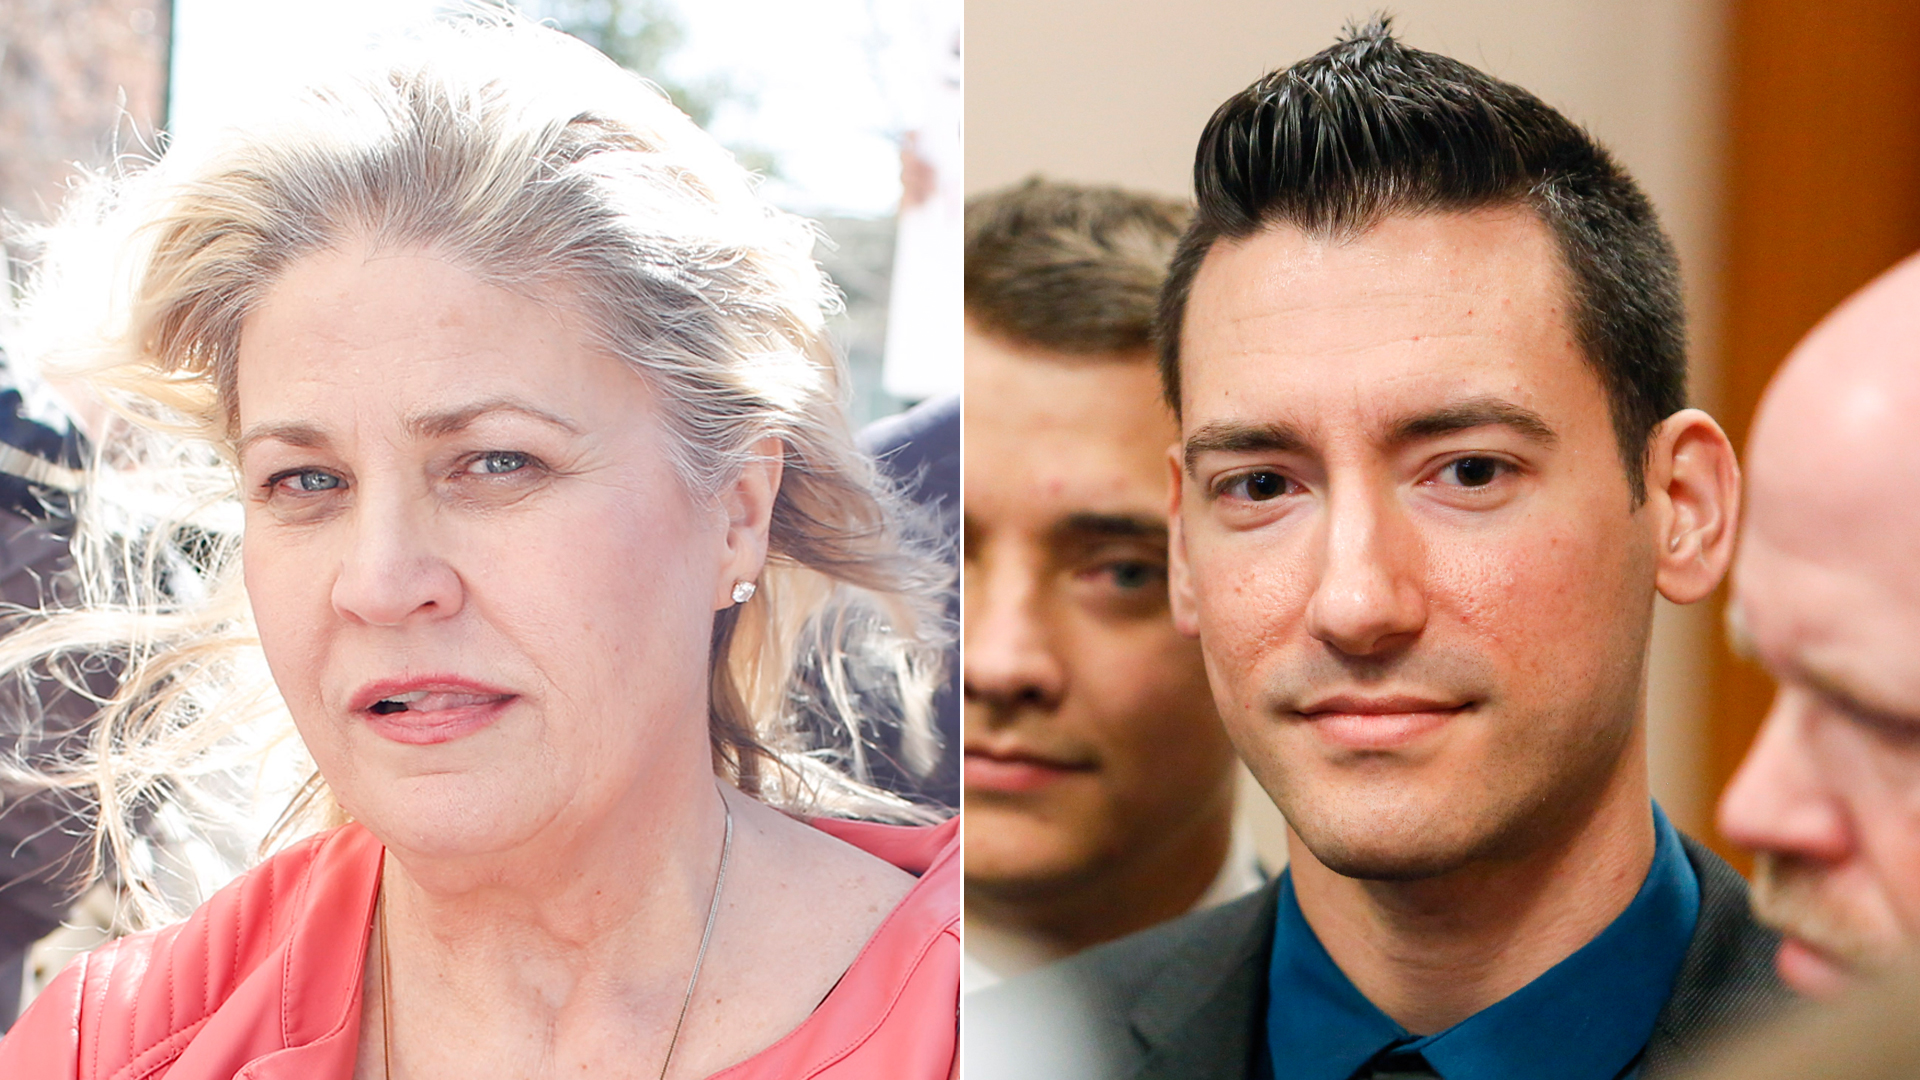 Sandra Merritt, left, and David Daleiden appear at the Harris County Criminal Courthouse in Houston in February 2016. (Credit: Eric Kayne/Getty Images)